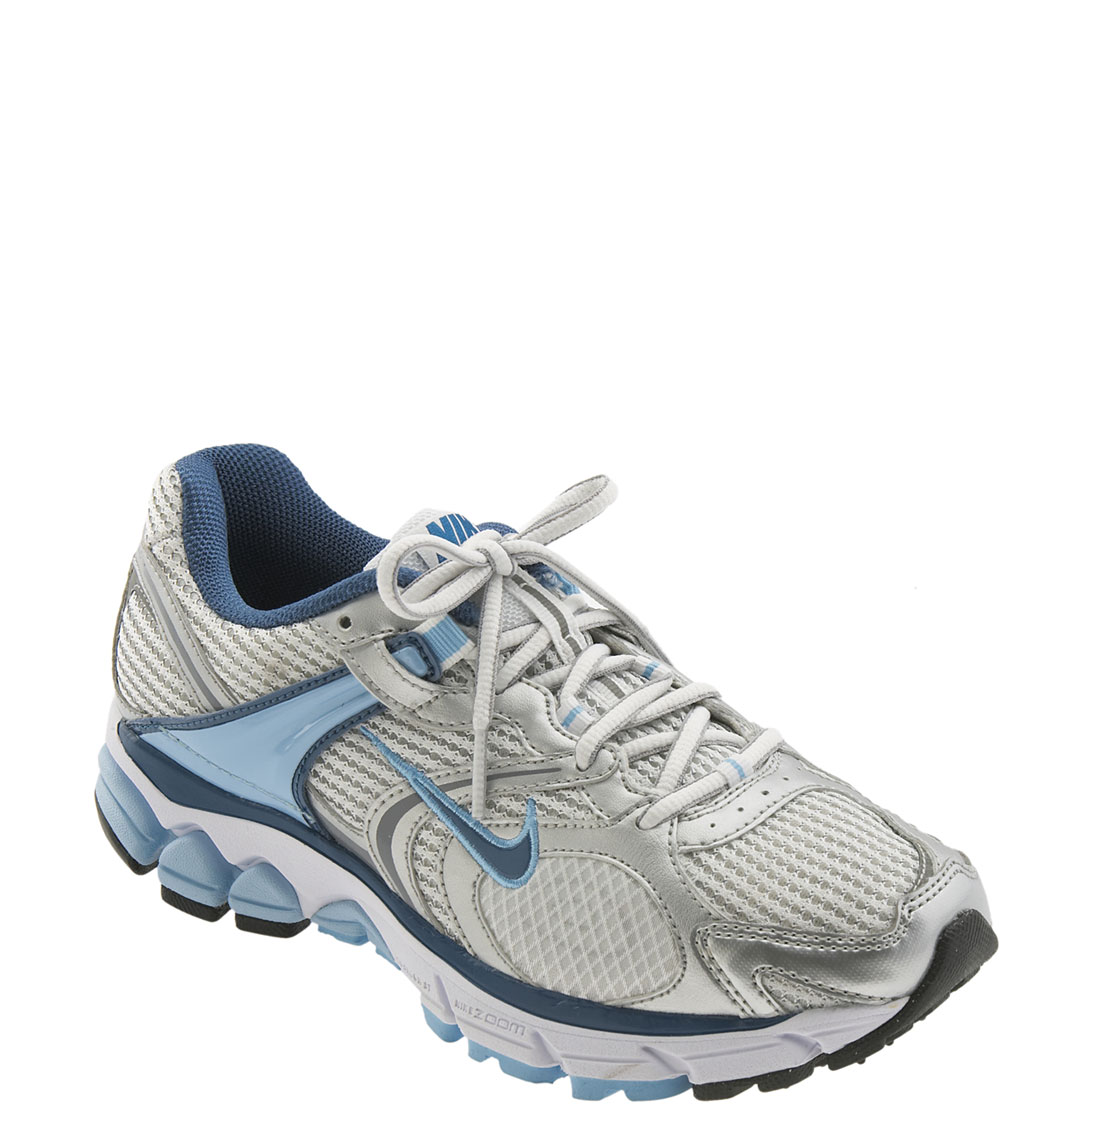 Fantastic Zoom Vomero 11 Running Shoes Online Sale  Nike Women39s Running Shoes